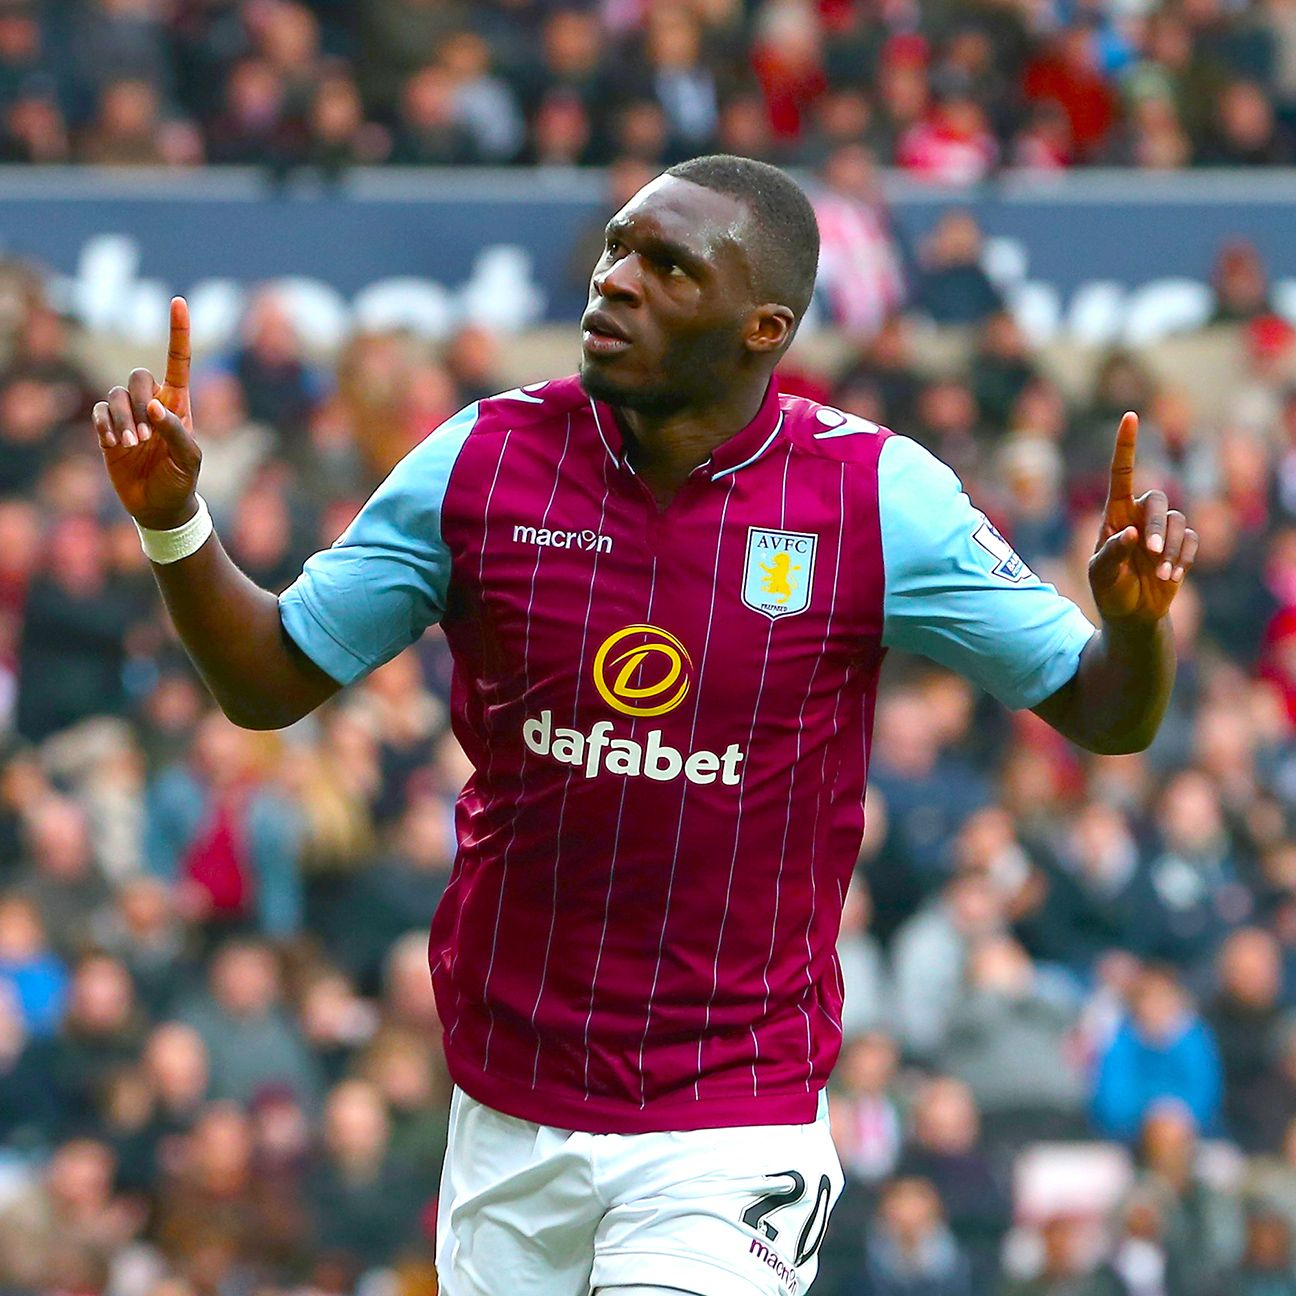 Striker Christian Benteke will be looking to add to his 10-goal total in Aston Villa's crucial home date with Everton.